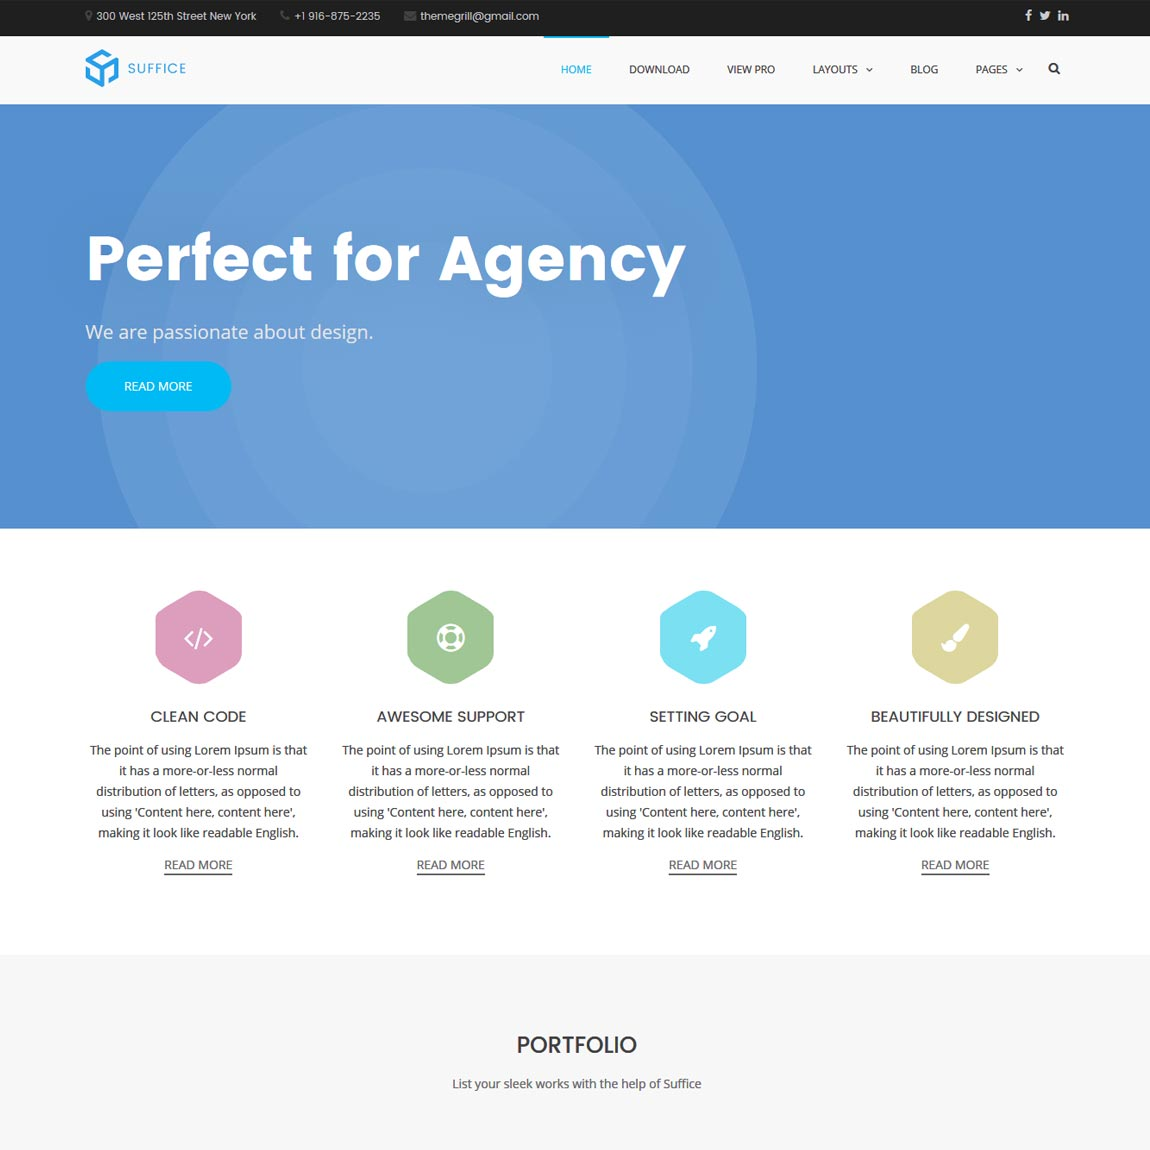 suffice-free-minimalist-wordpress-theme